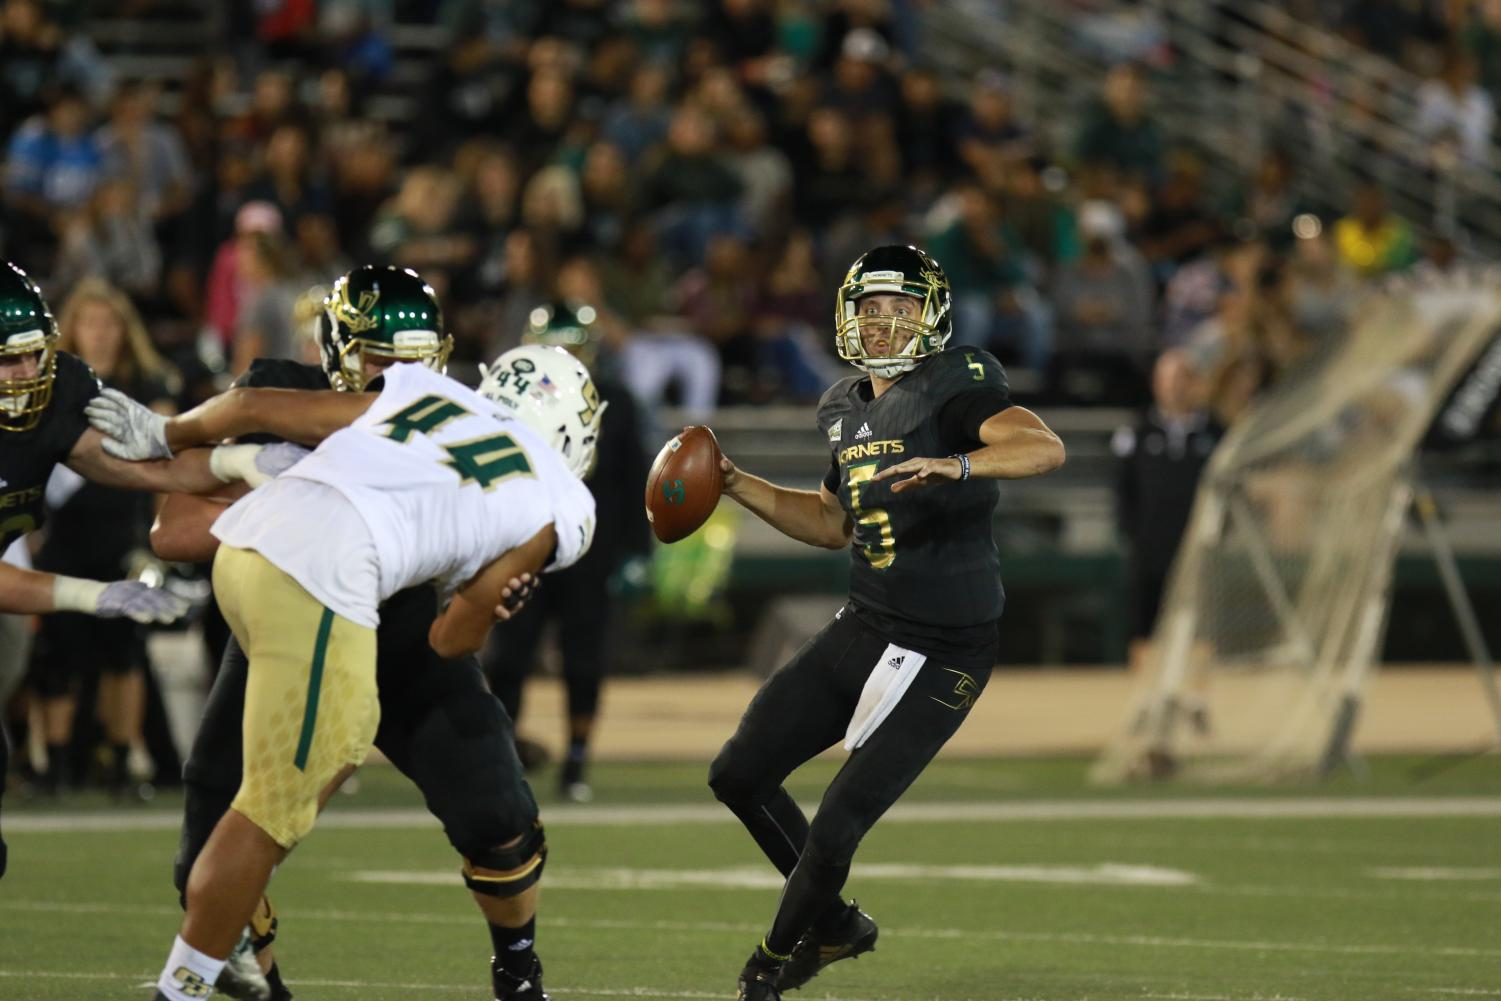 Sac State senior quarterback Kevin Thomson looks to pass during the Hornets 41-27 loss to Cal Poly on Oct. 6. The Hornets head to Southern Utah to continue Big Sky Conference play on Saturday at 5 p.m.